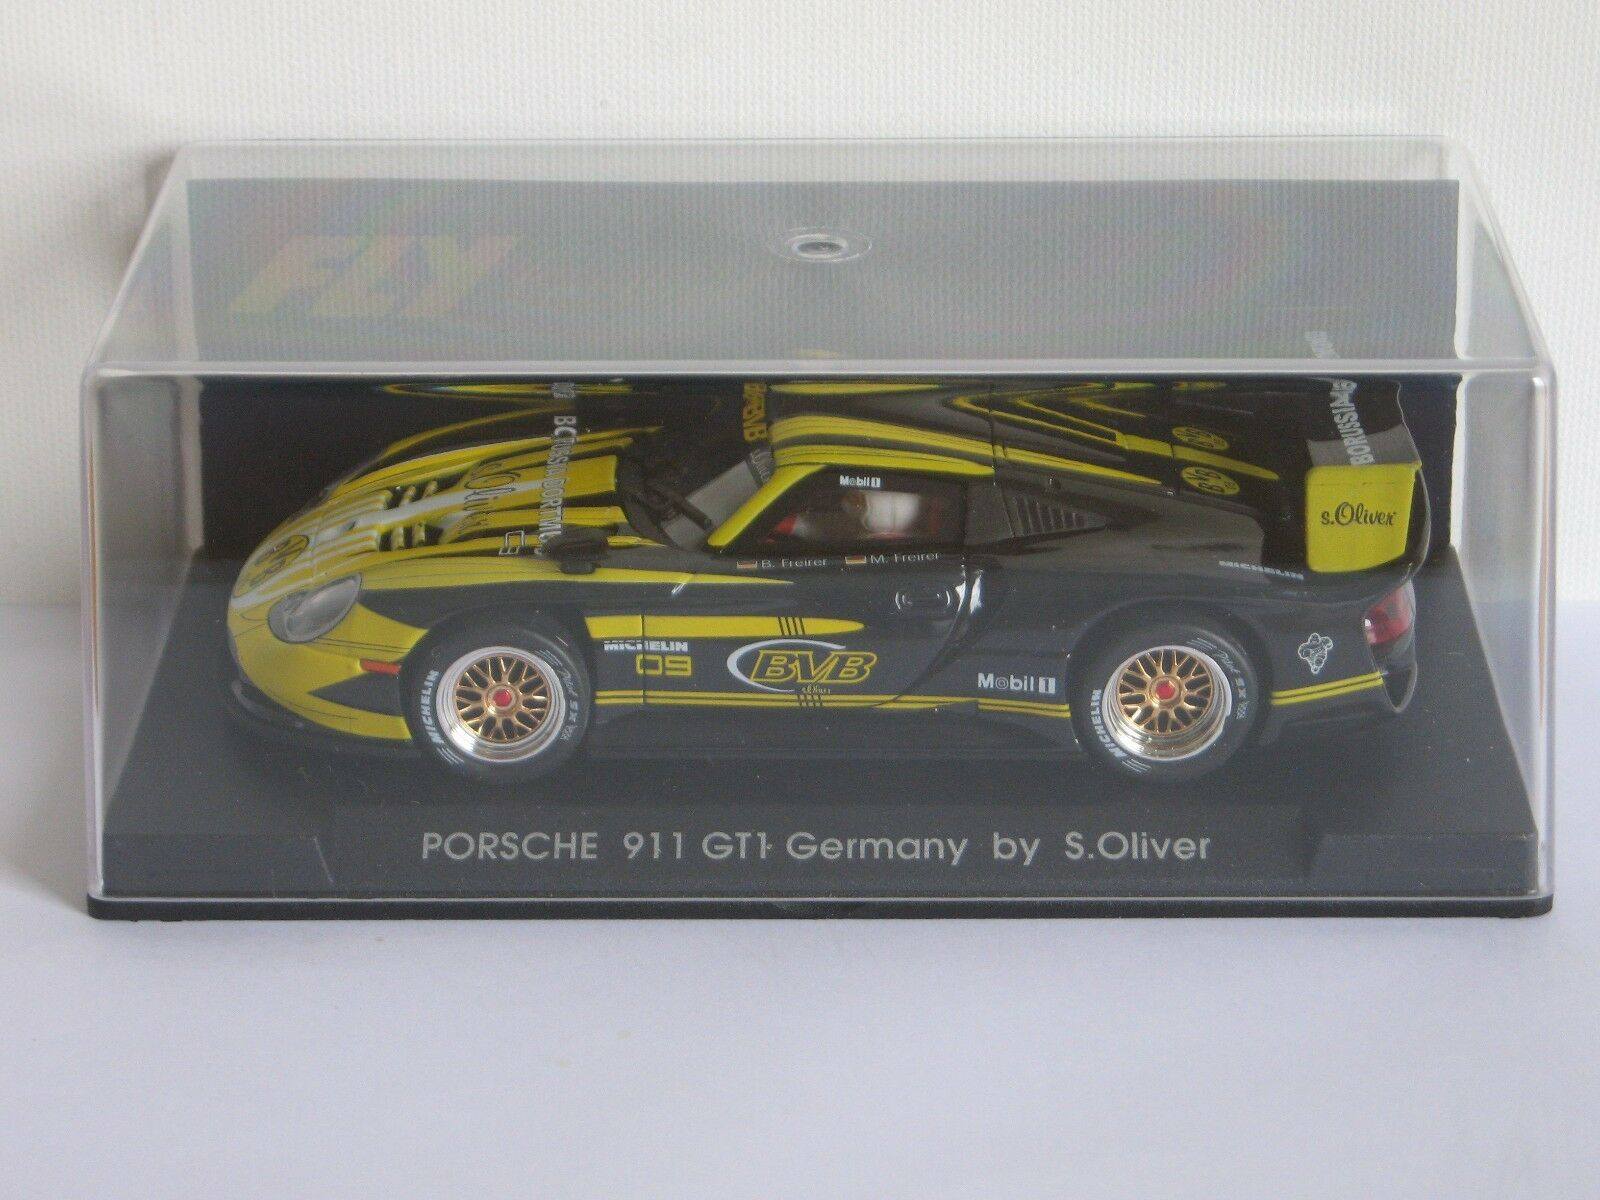 FLY Car Porsche 911 GT1 Special Edition Germany by S.Oliver Ref. E51